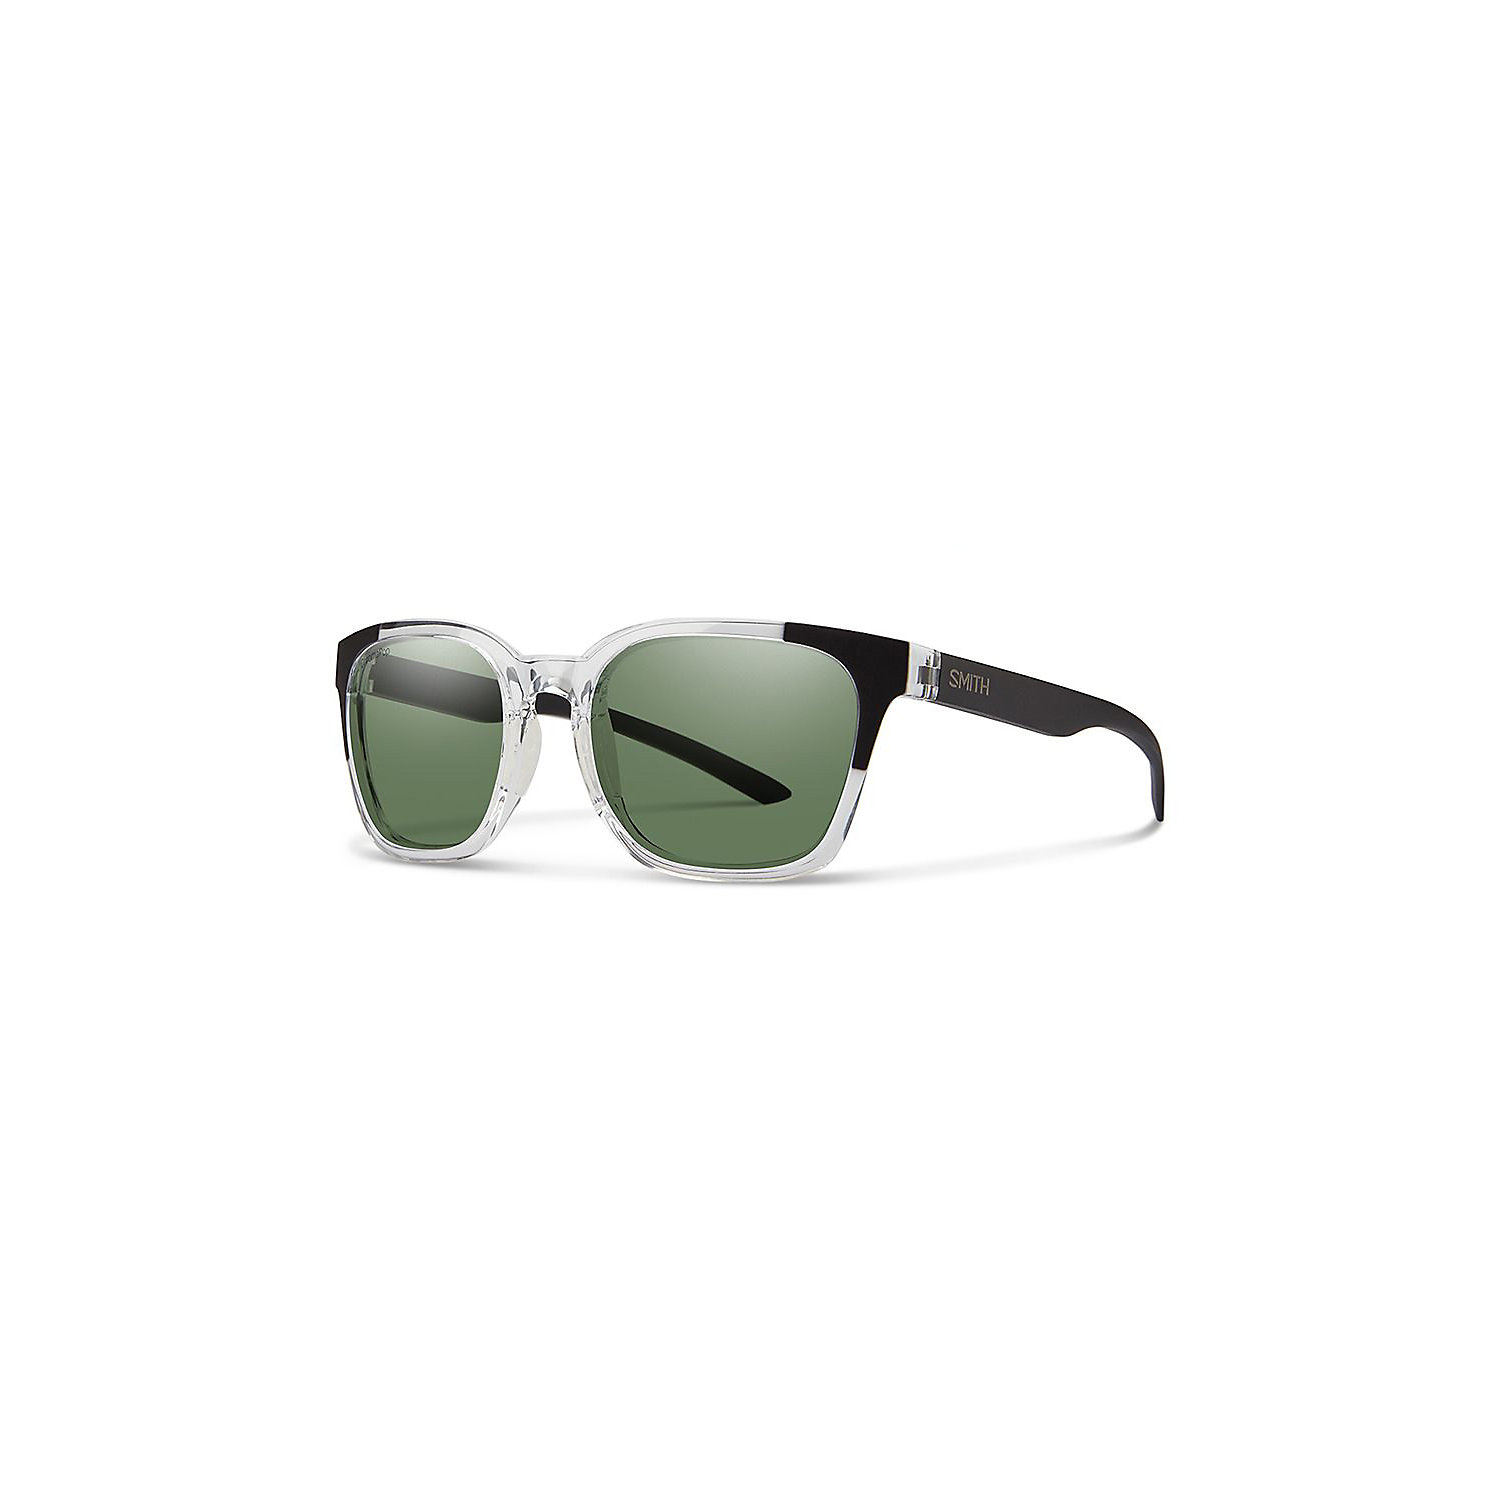 5062508ba62 Smith Founder ChromaPop Polarized Sunglasses - Moosejaw